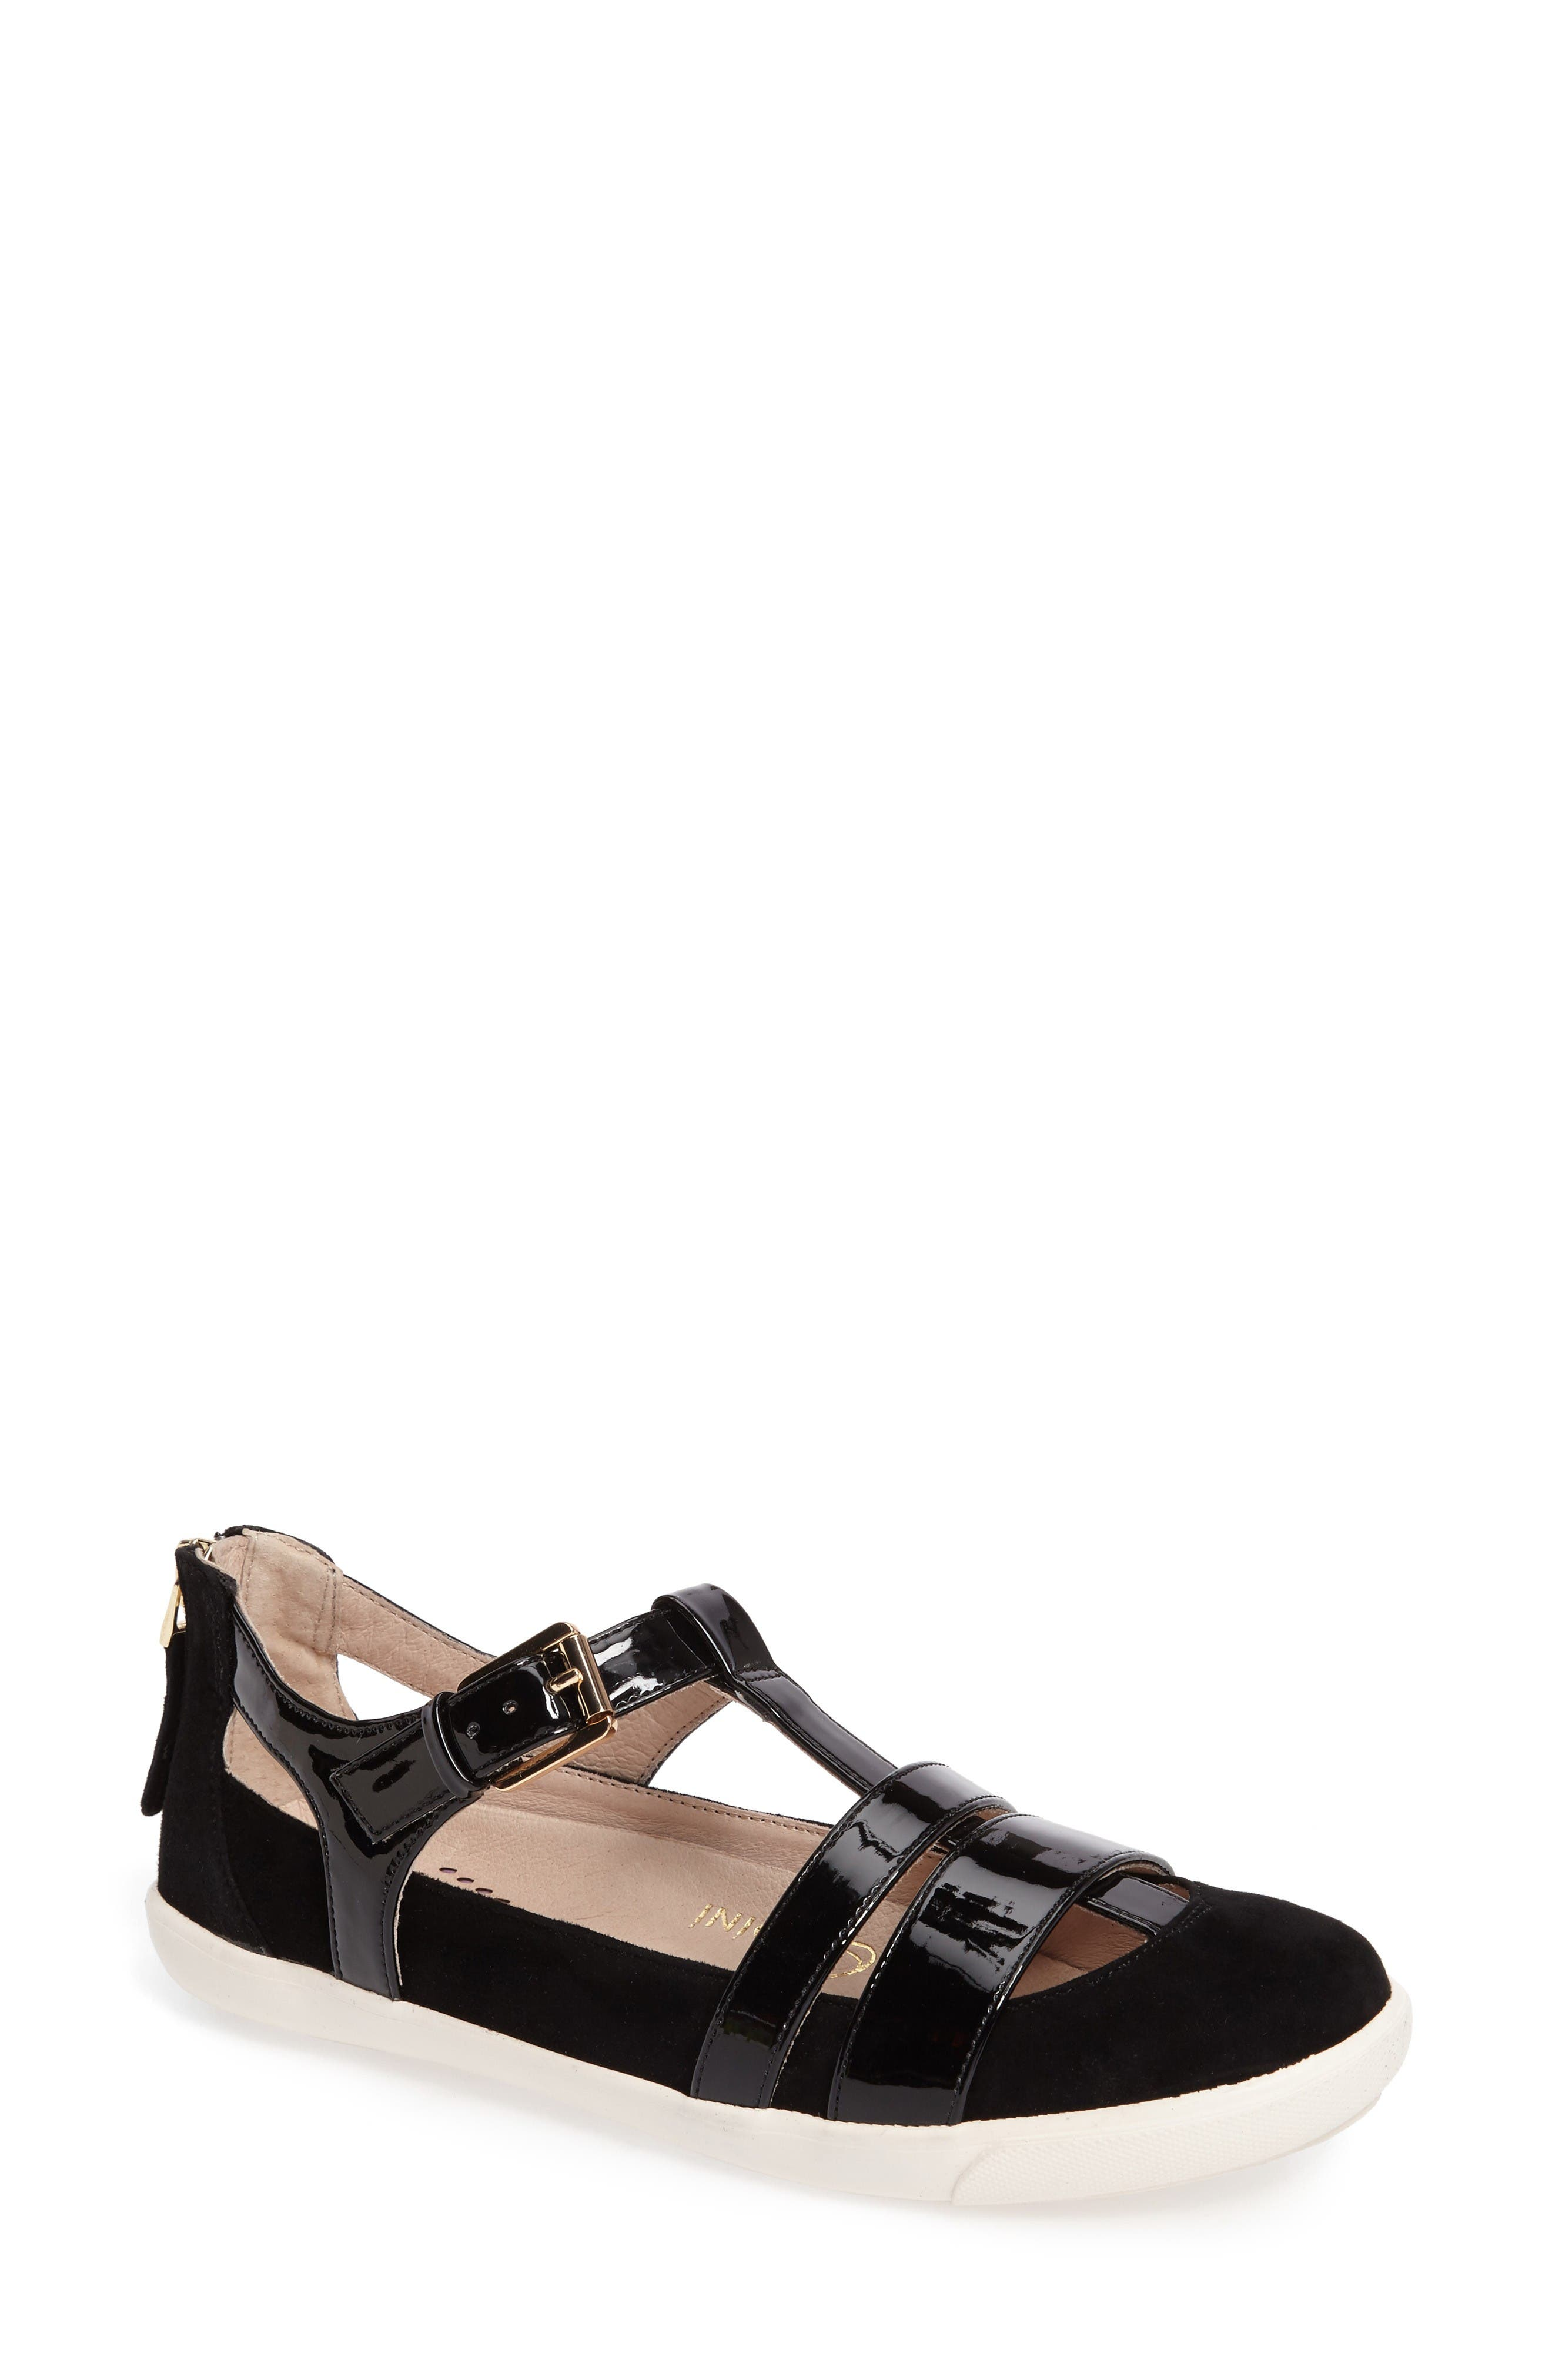 Iona Strappy Sneaker,                         Main,                         color, Black Leather